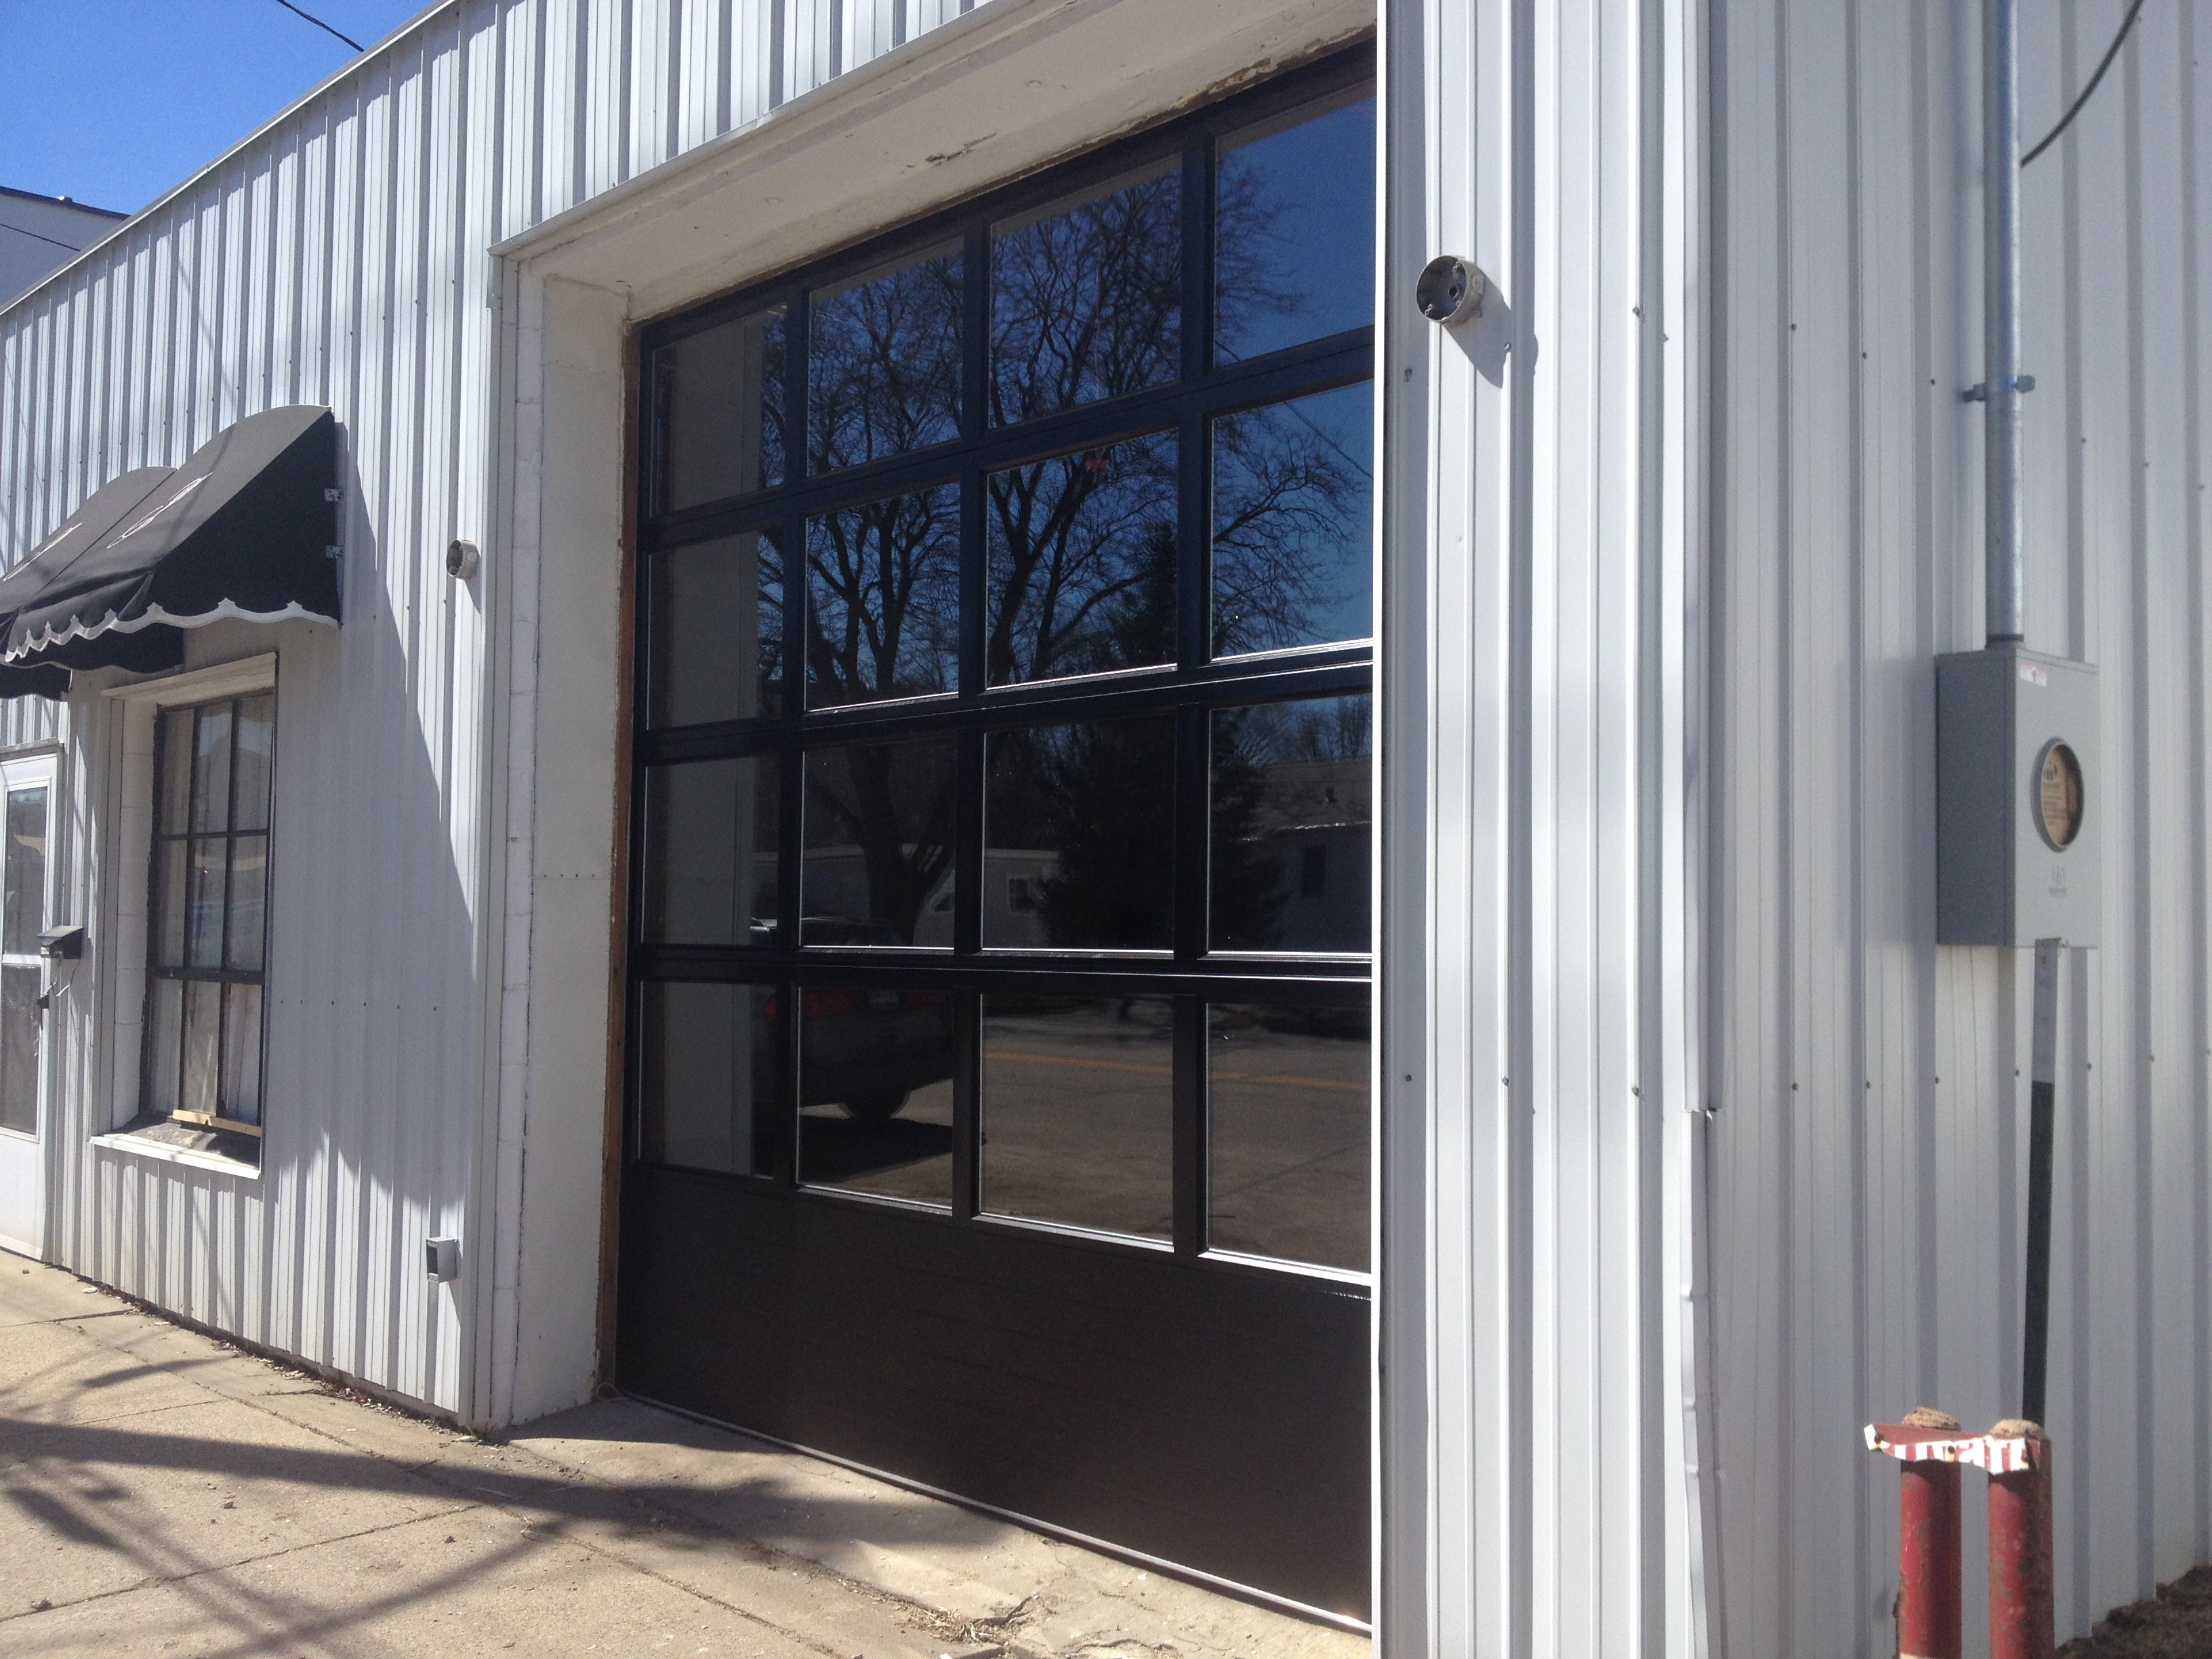 Business Garage Door With Full Glass For Optimal Light Garage Doors Commercial Glass Doors Commercial Garage Doors